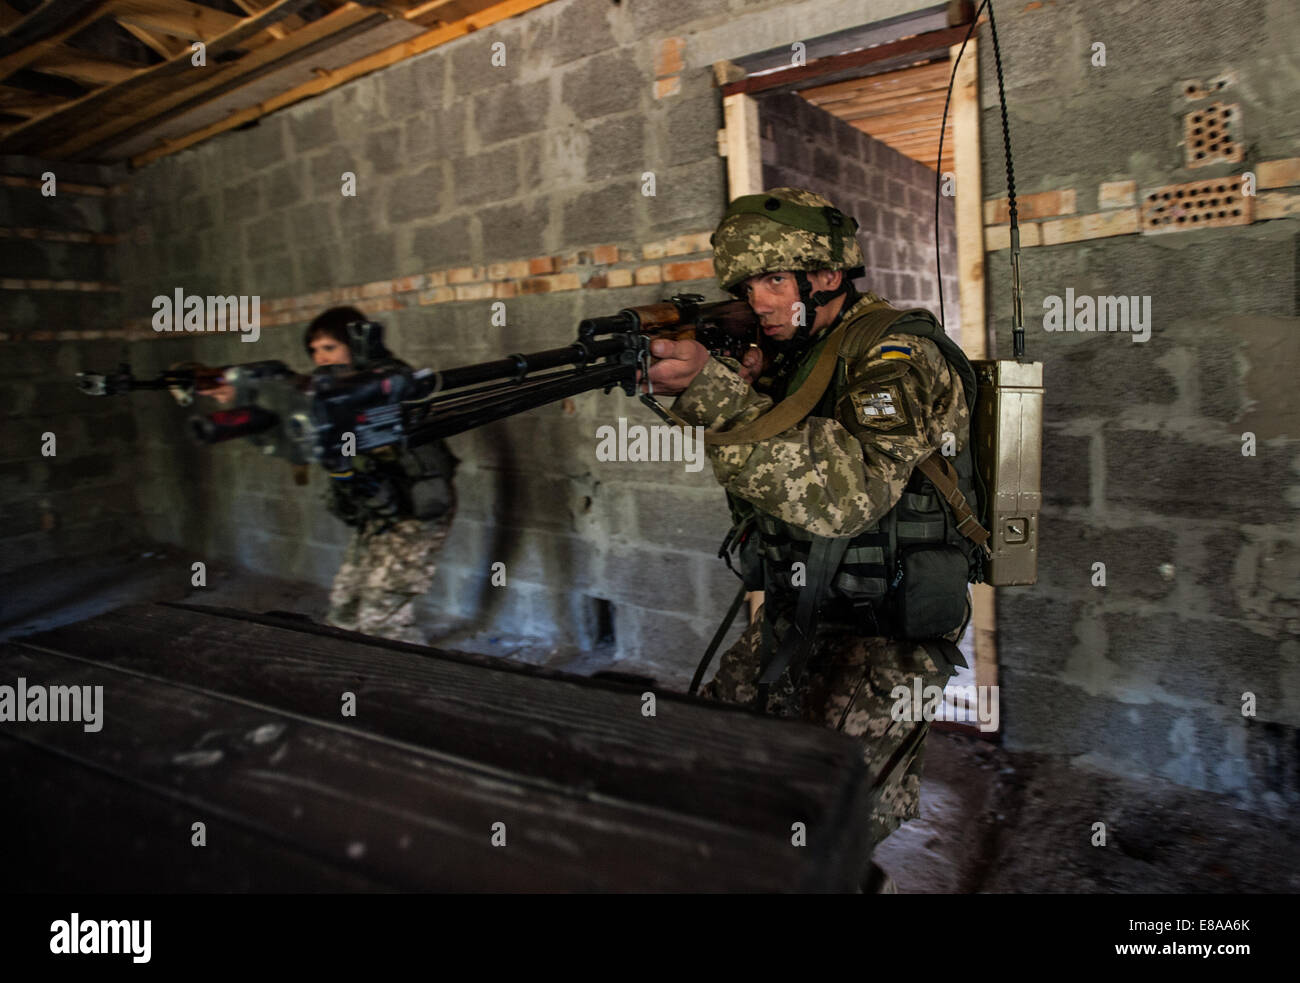 Ukrainian marines clear a room during a situational training exercise as part of Rapid Trident 2014 in Yavoriv, - Stock Image